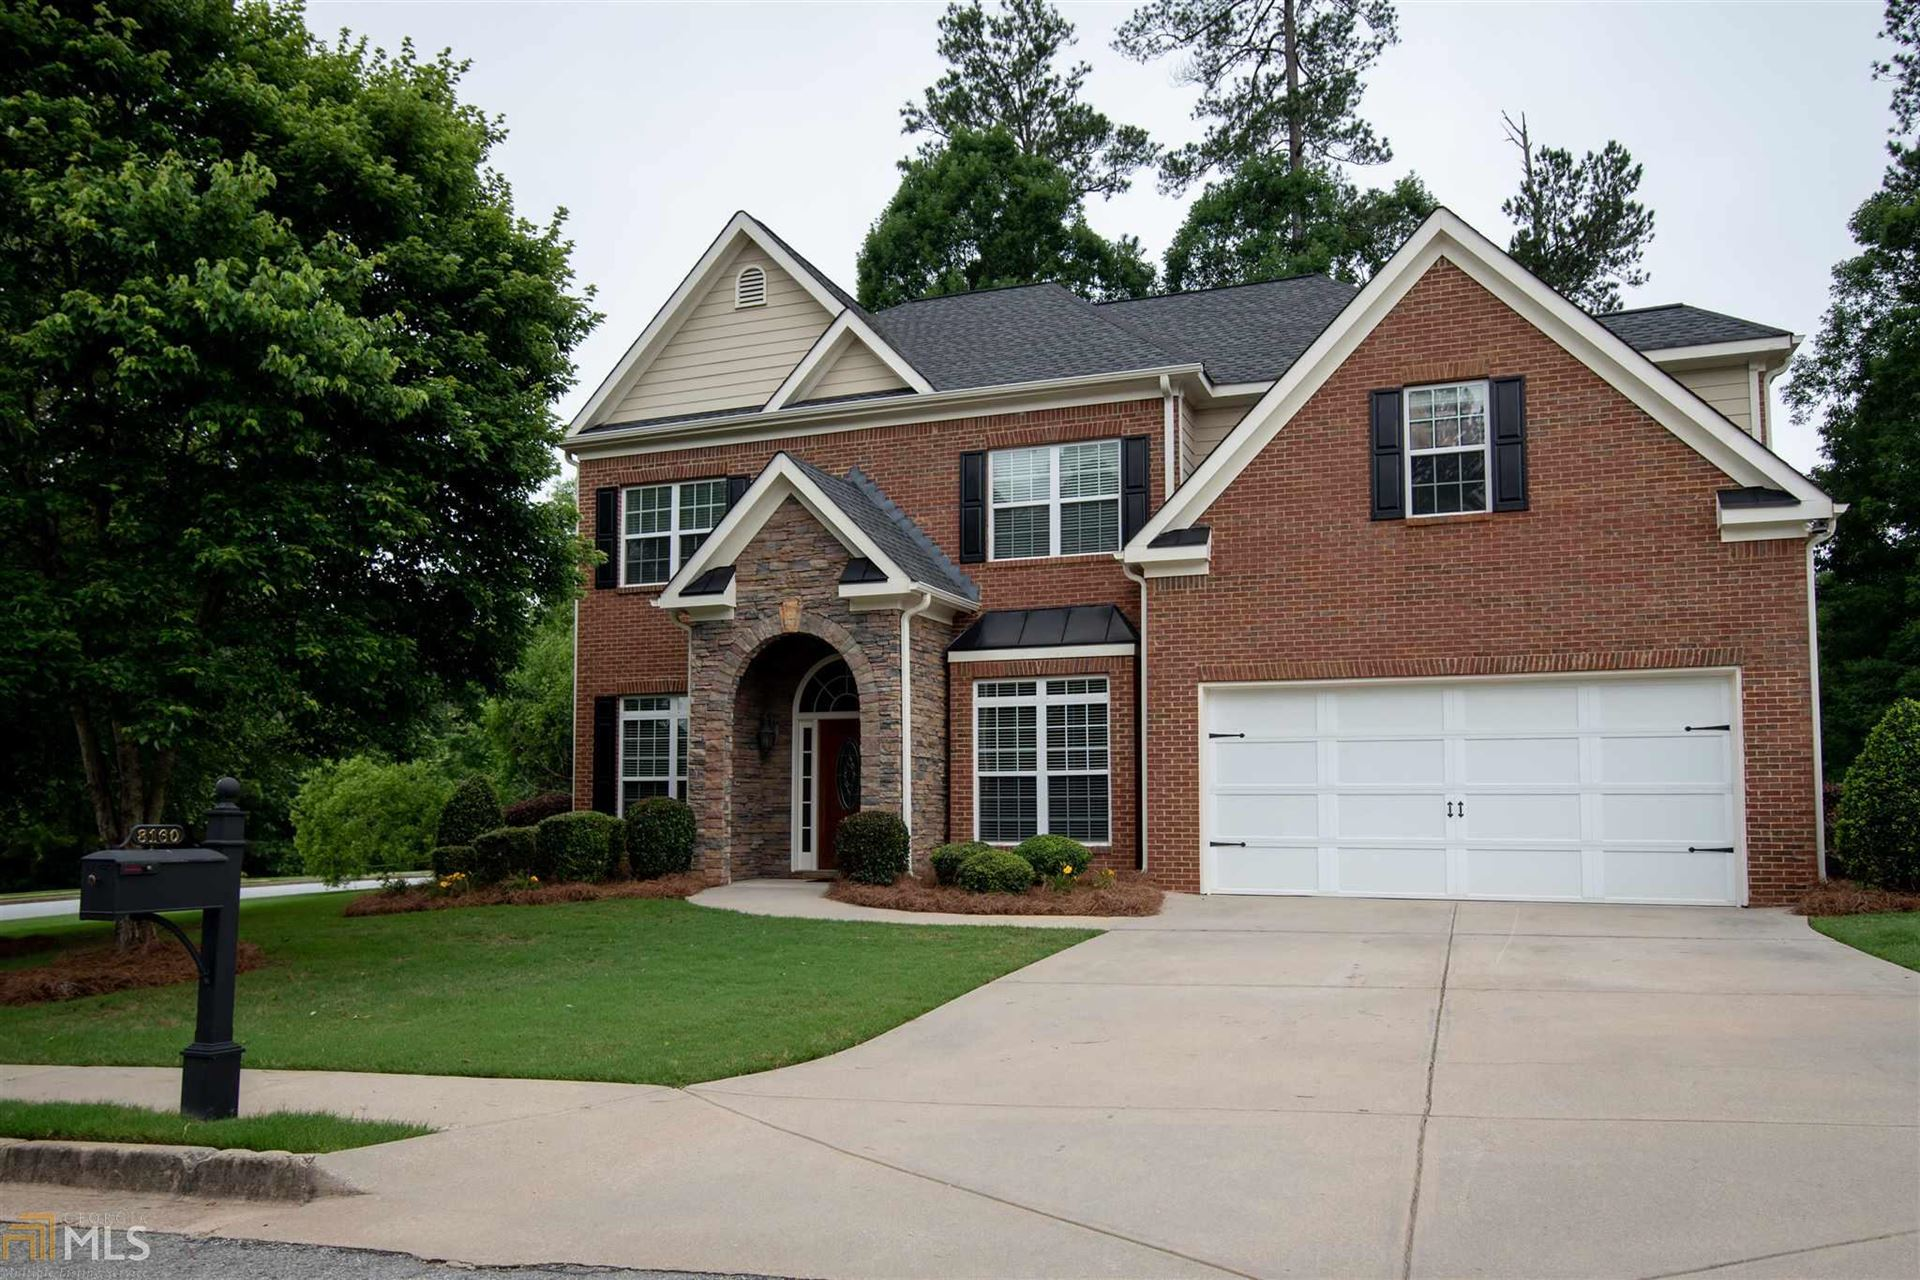 8160 Crestview Dr, Covington, GA 30014 - #: 8813070